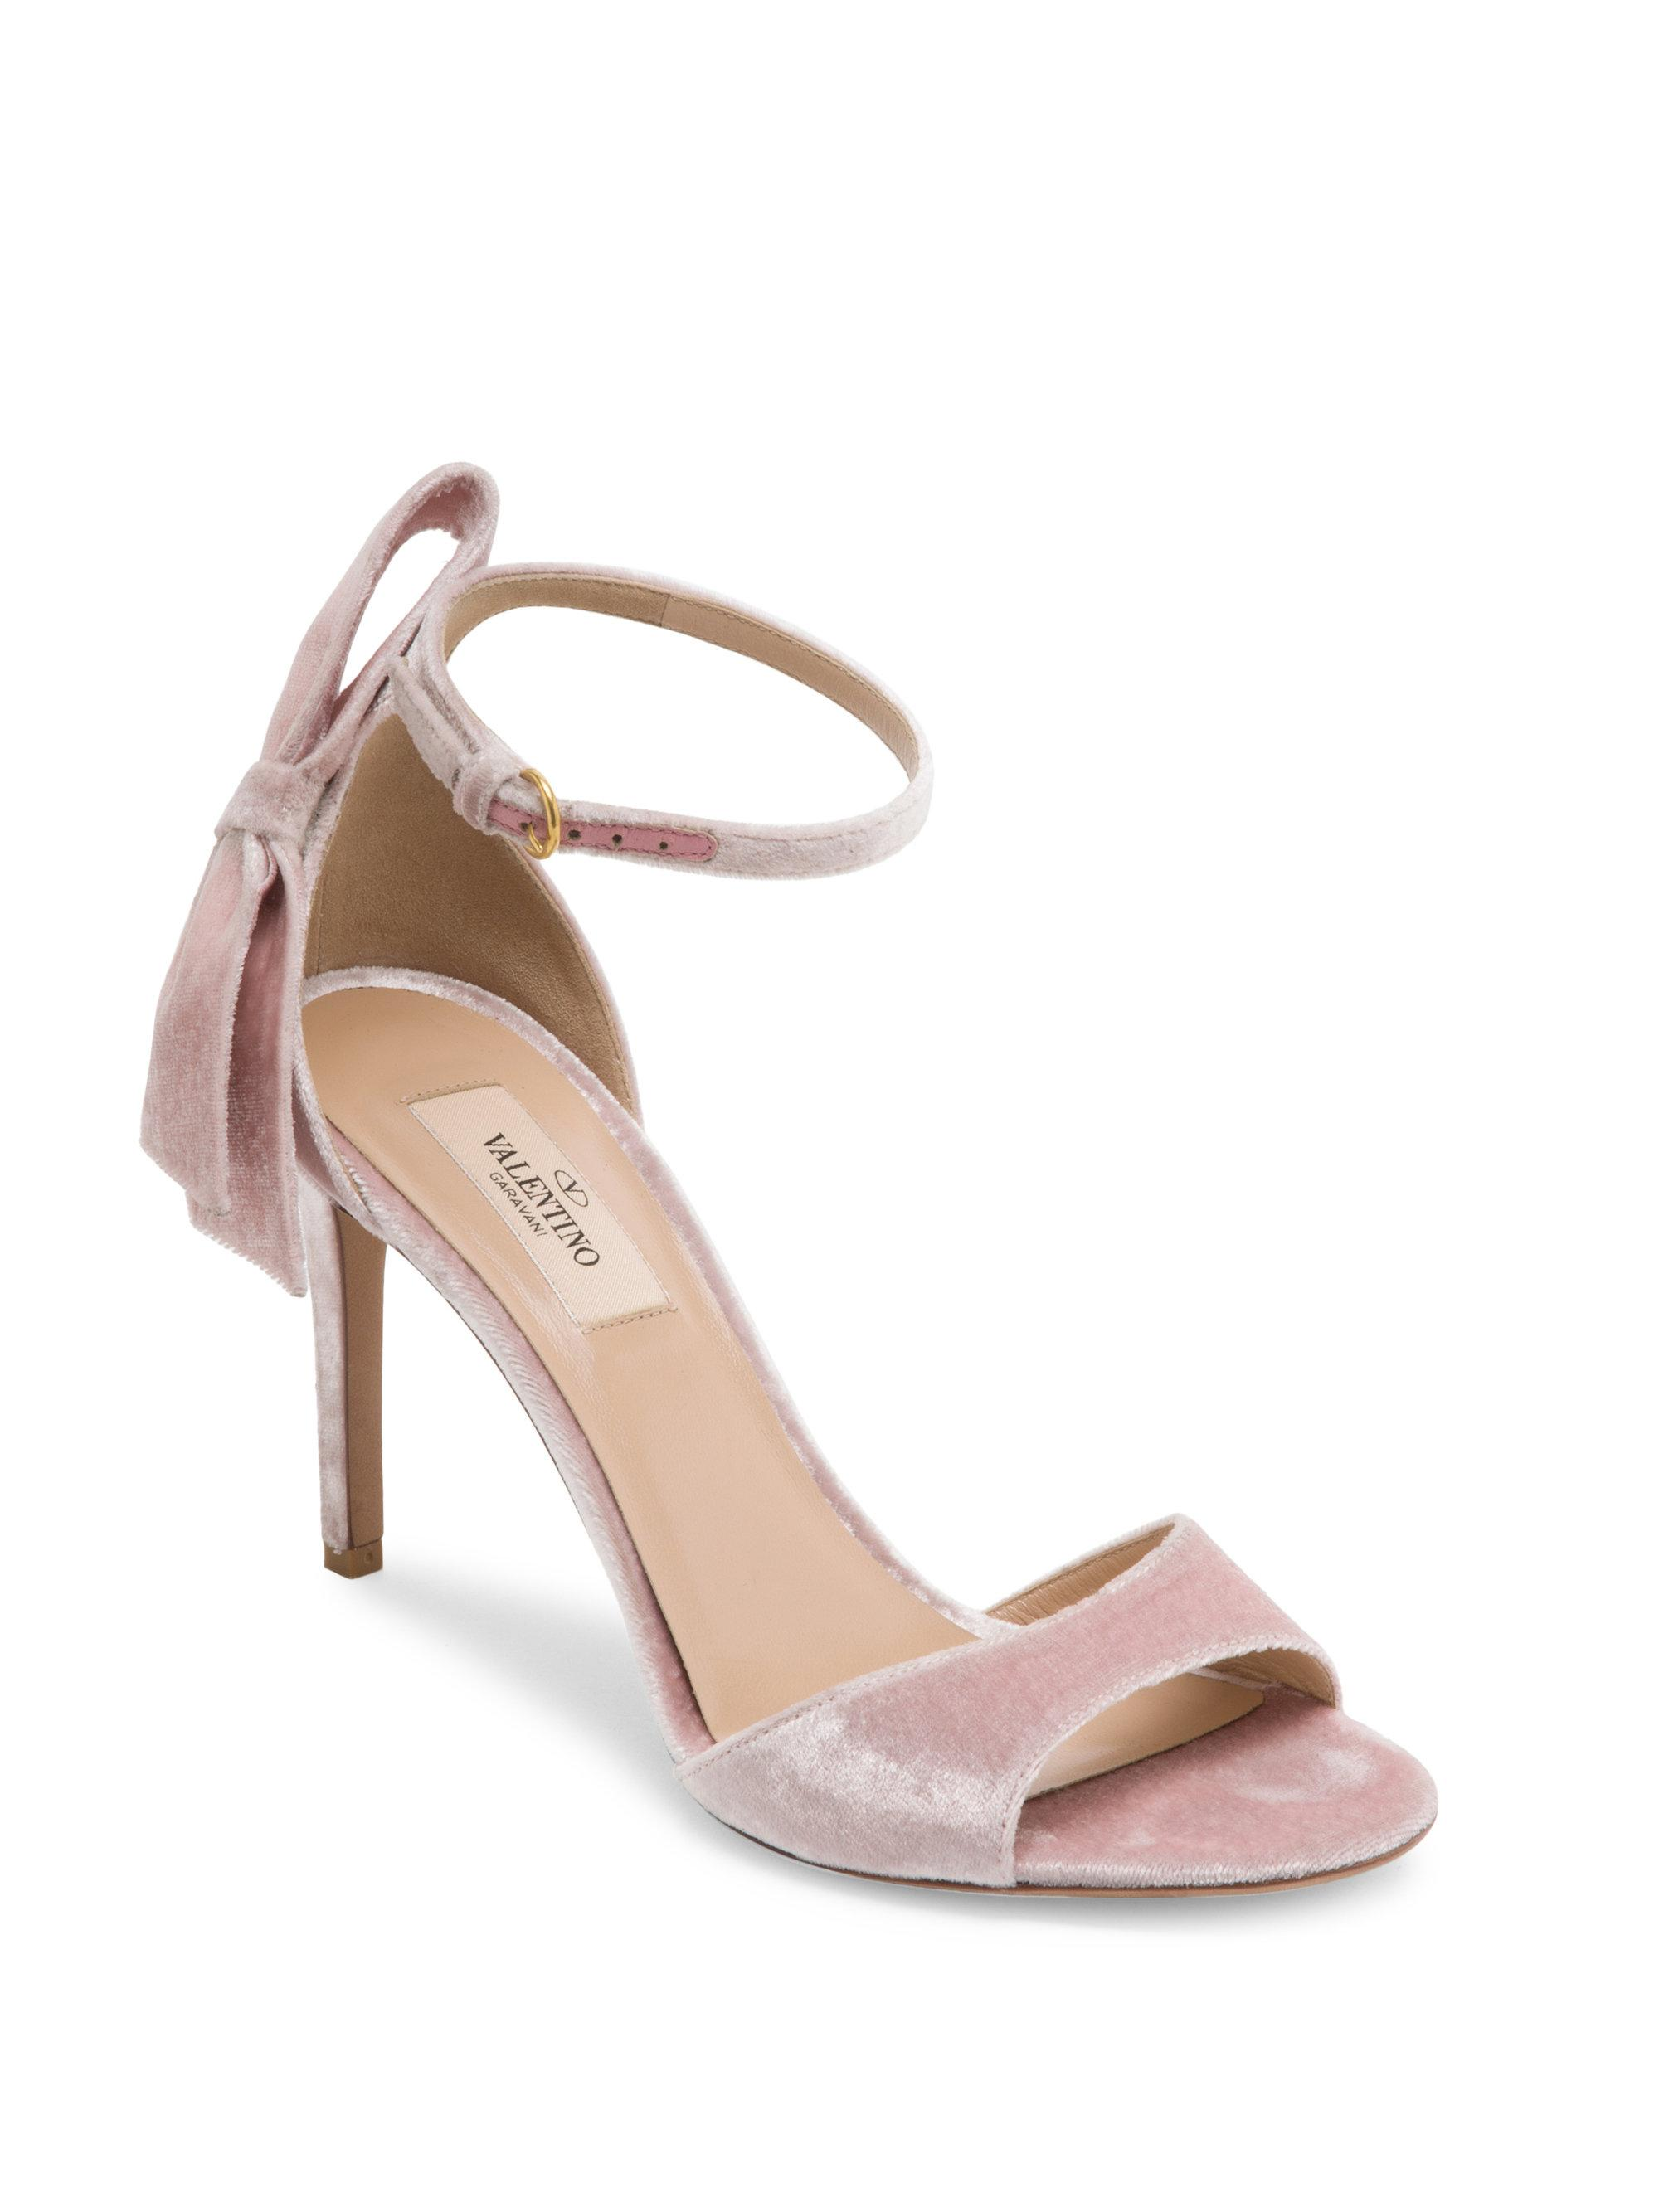 87521a664376 Lyst - Valentino Pretty Bow Velvet Ankle-strap Sandals in Pink